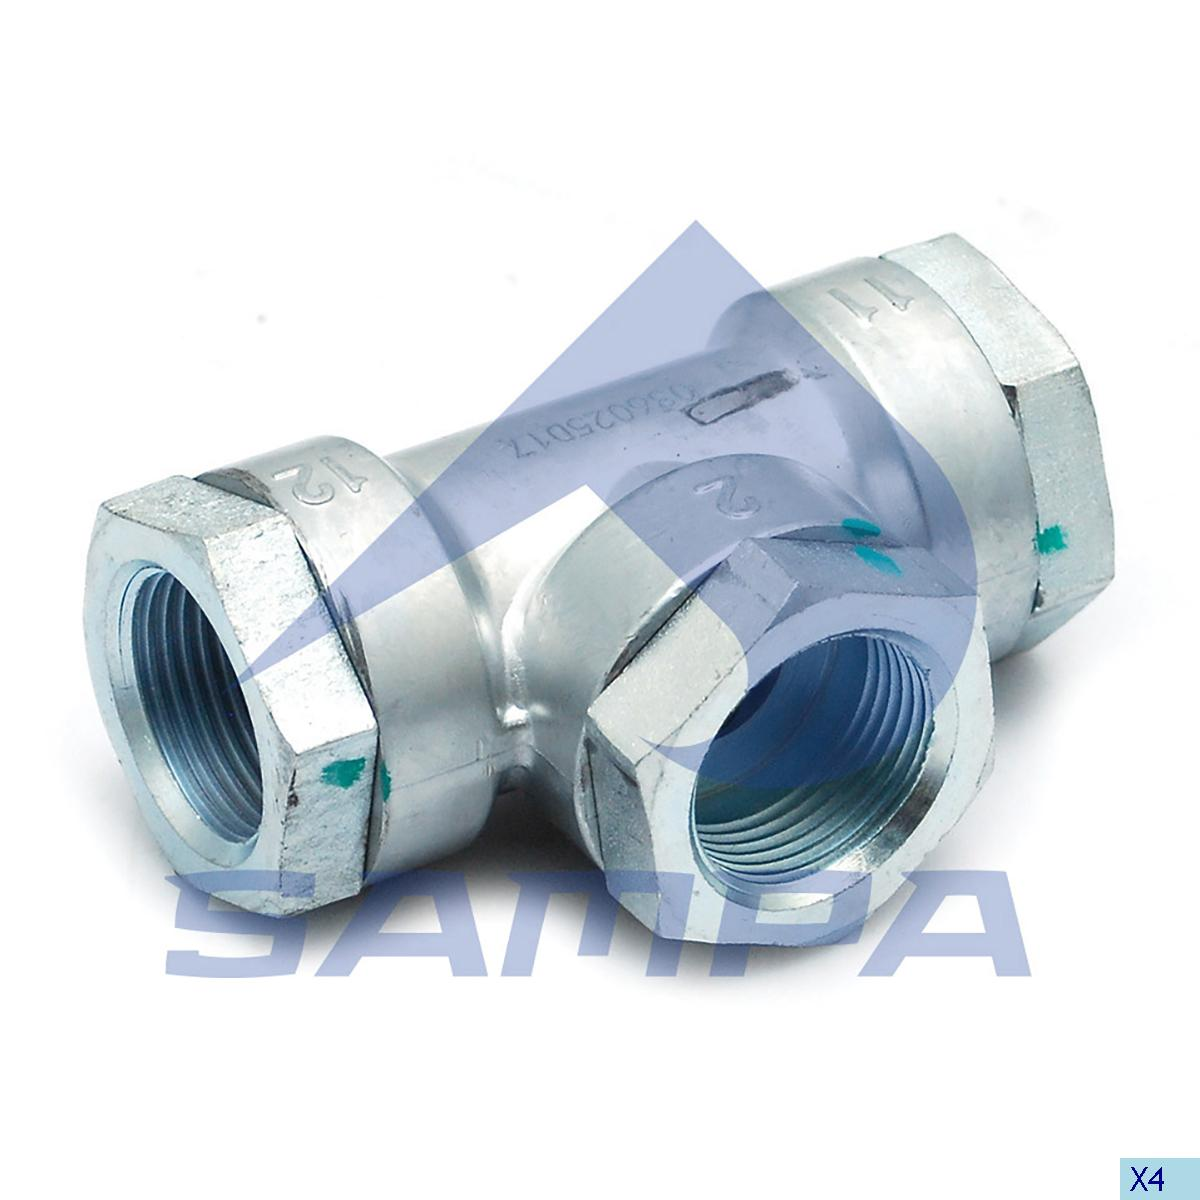 Check Valve, Bergische, Compressed Air System